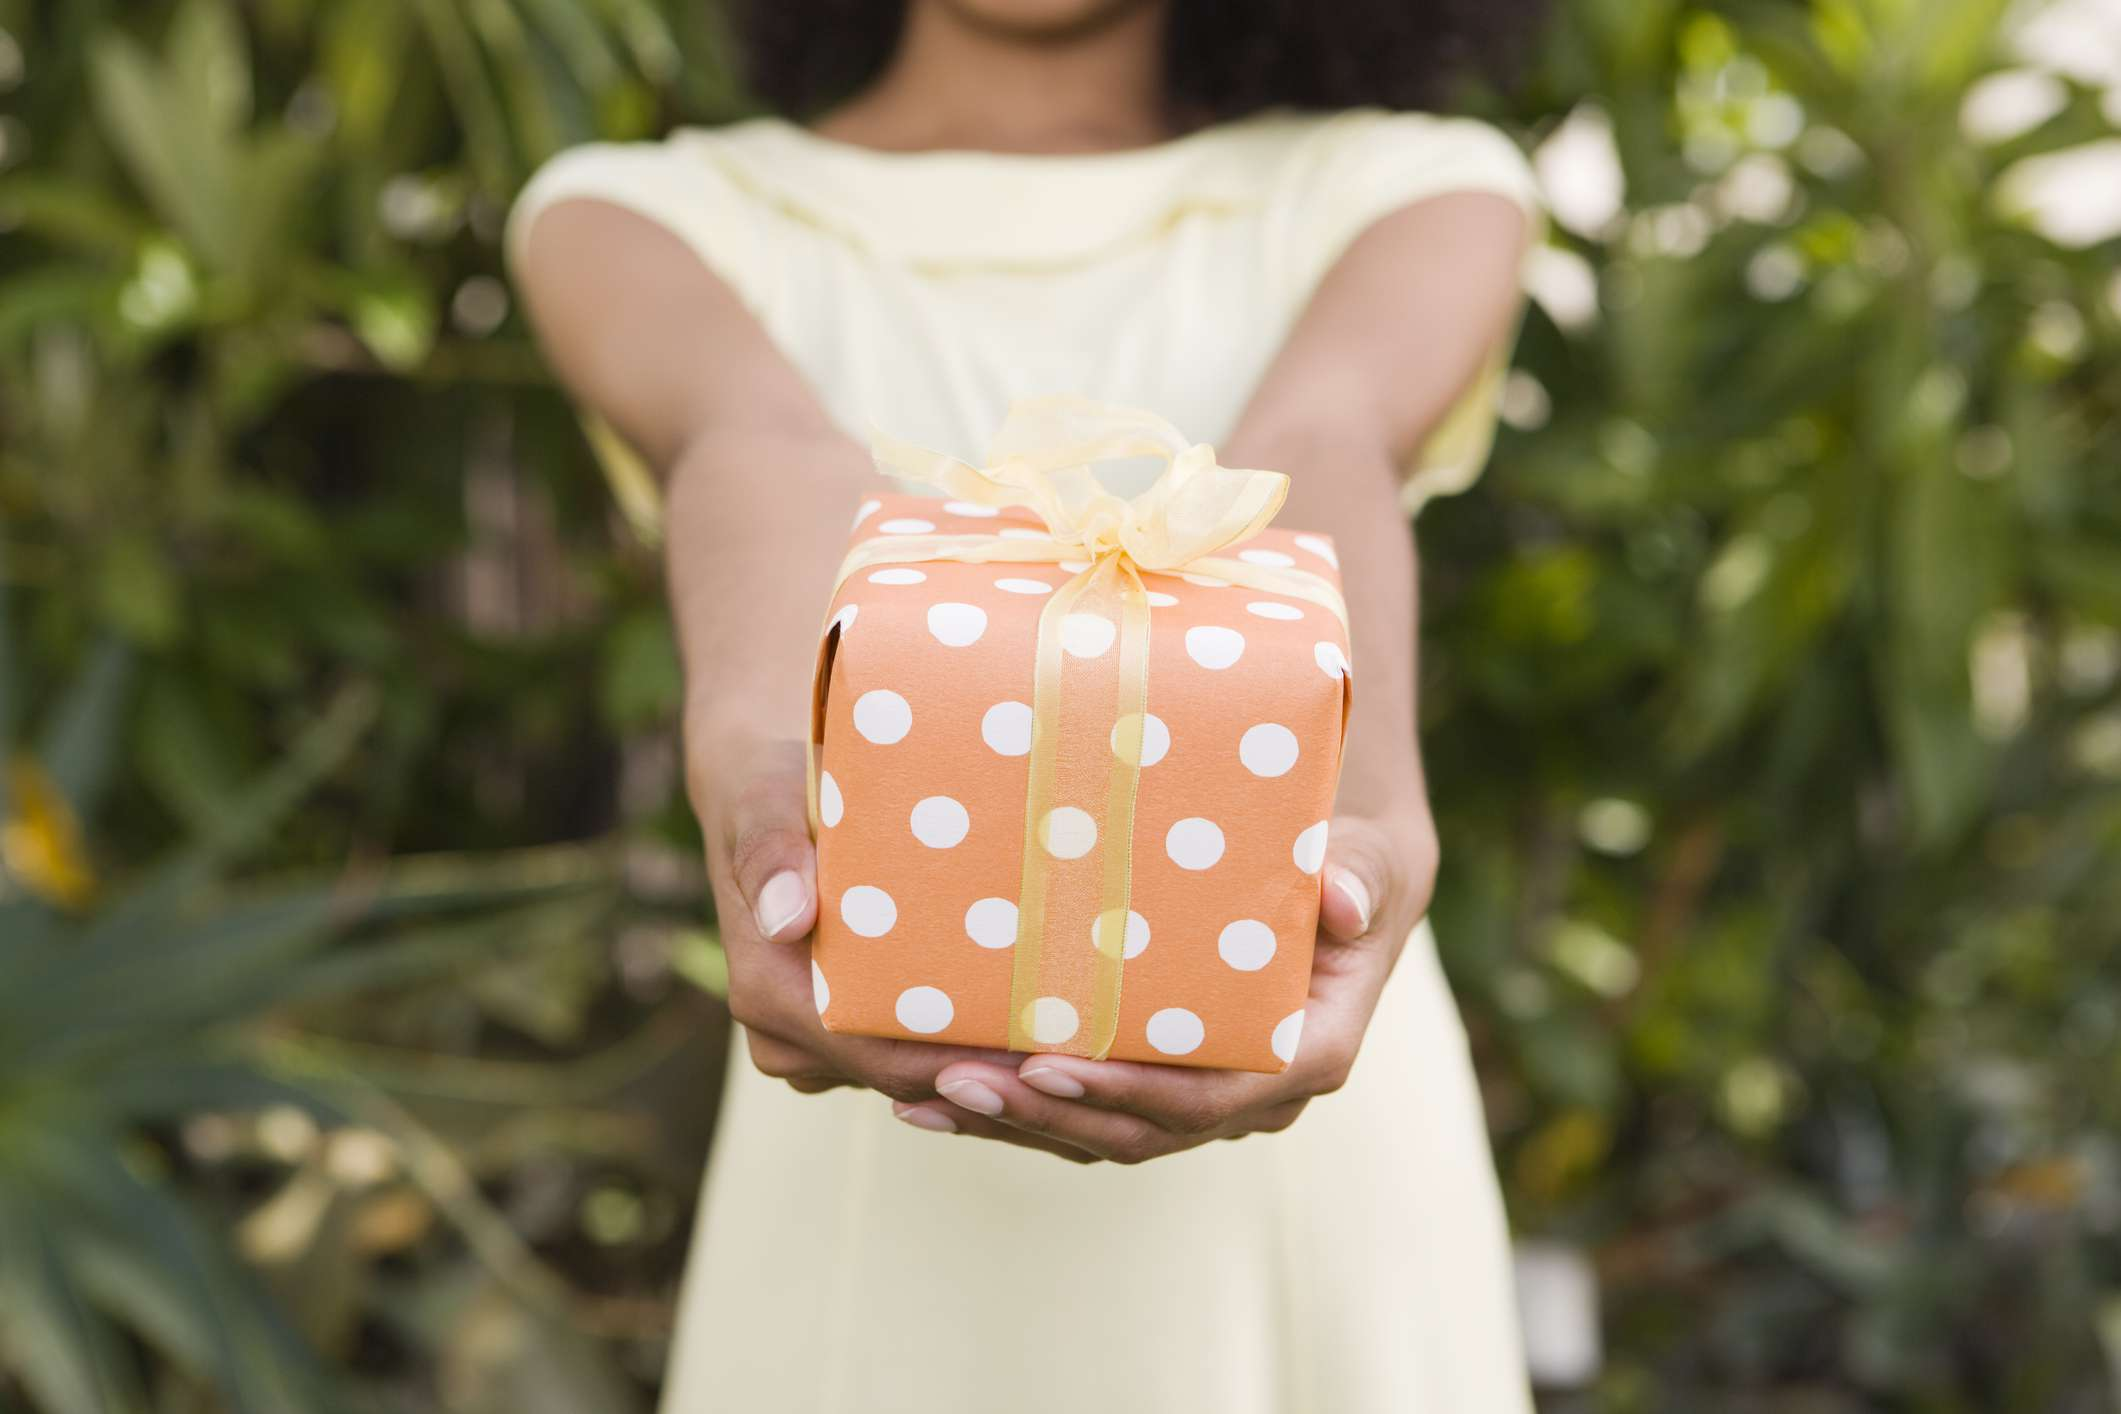 Woman holds out present in polkadot print wrapping